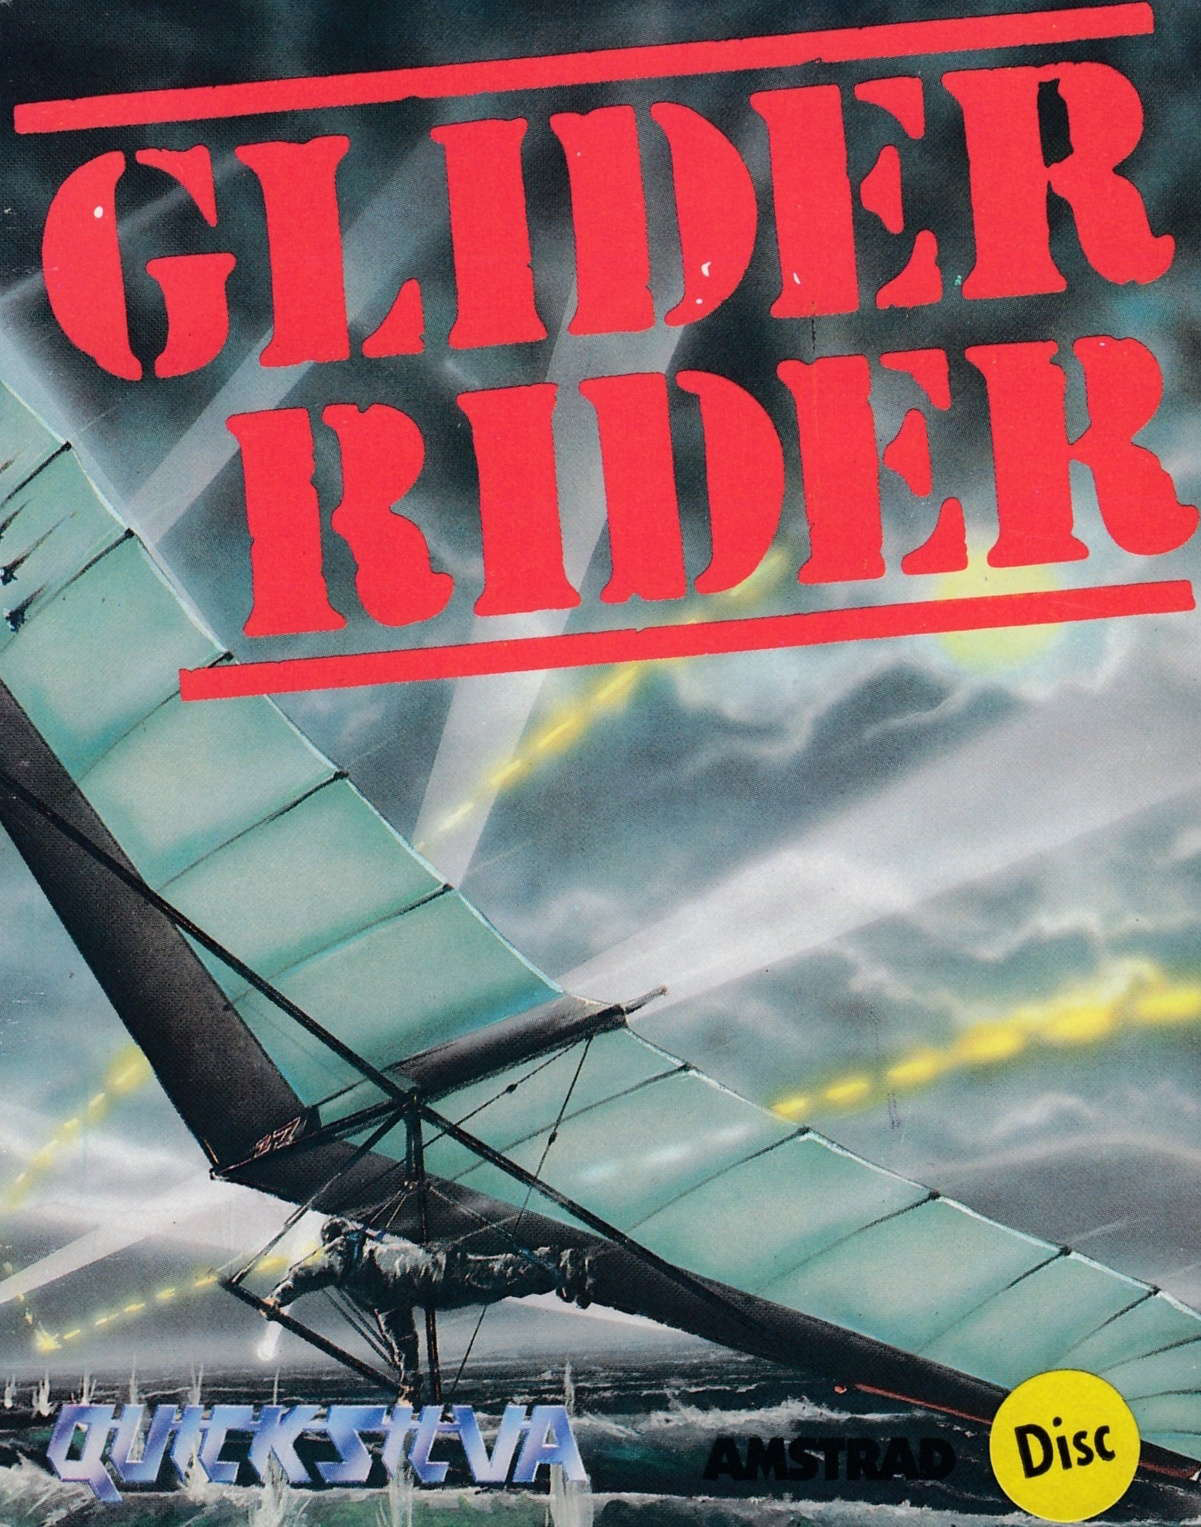 cover of the Amstrad CPC game Glider Rider  by GameBase CPC